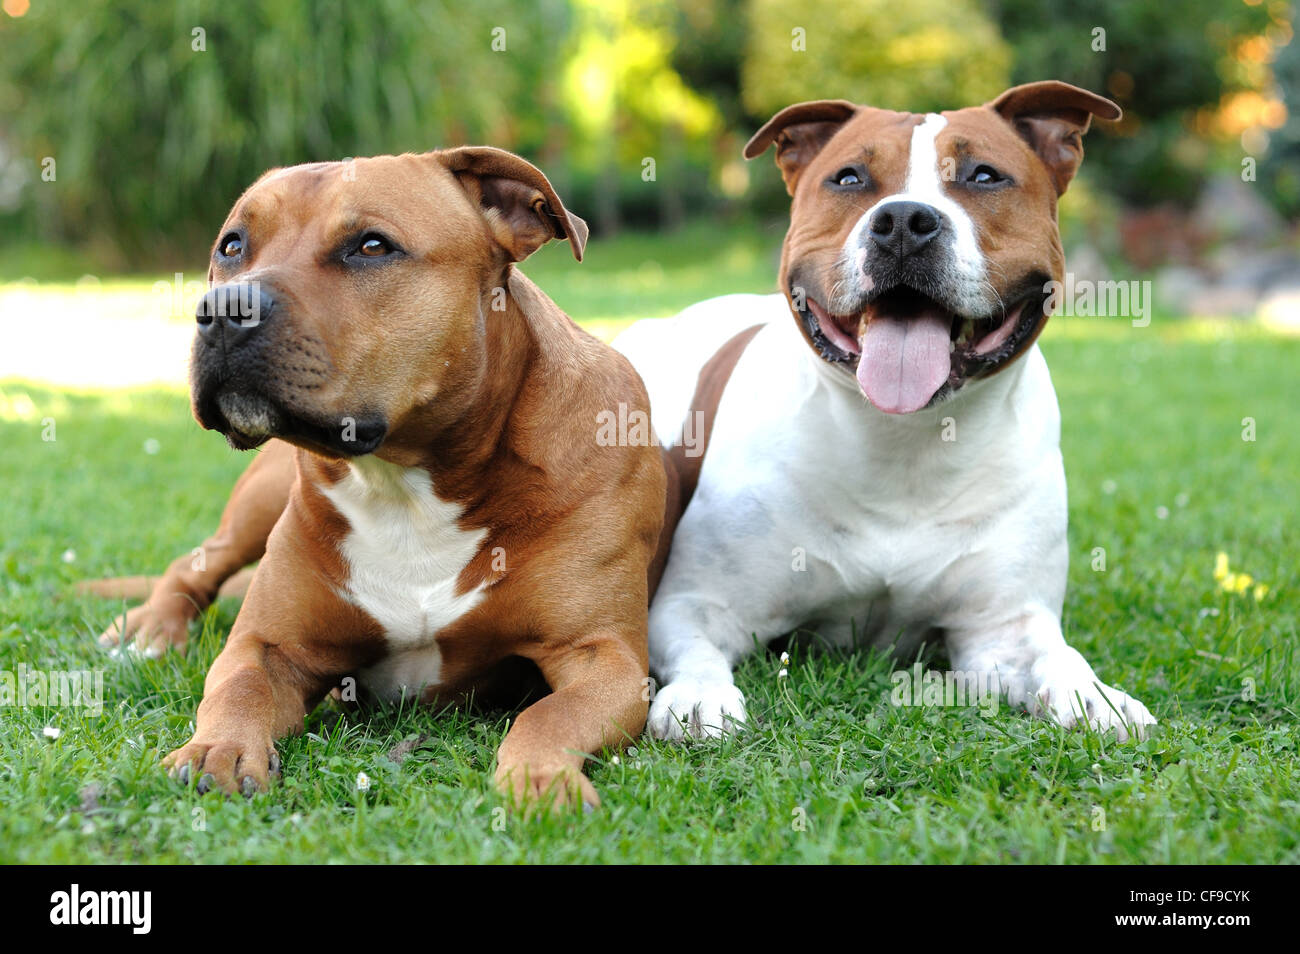 Two American Staffordshire terriers lying on the grass. - Stock Image